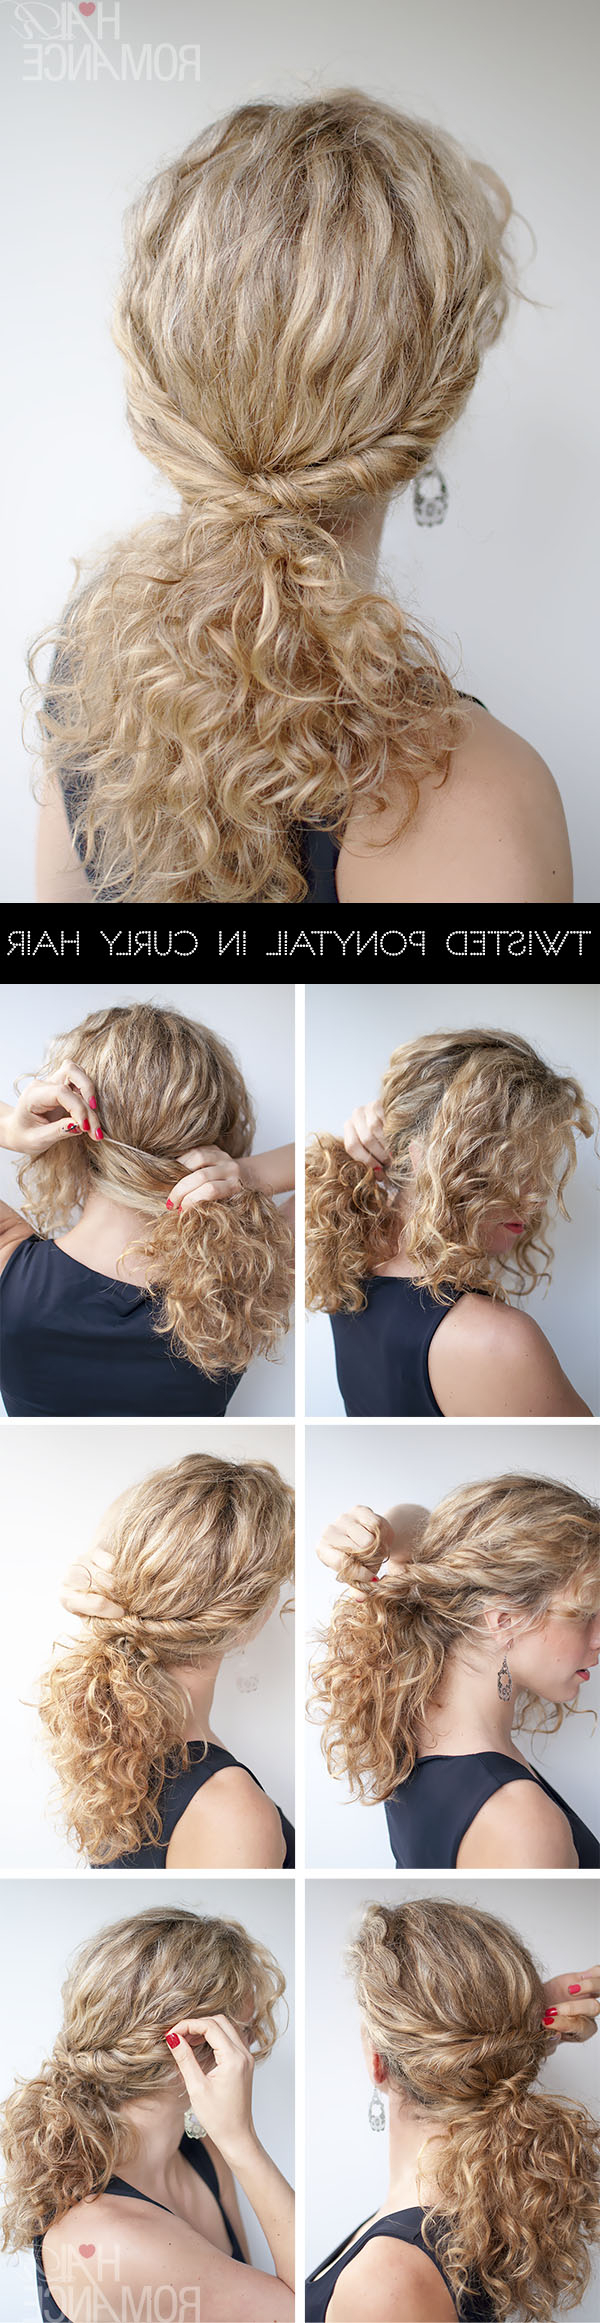 Trendy Twist Into Ponytail Hairstyles Inside Curly Hairstyle Tutorial – The Twist Over Ponytail – Hair Romance (Gallery 16 of 20)